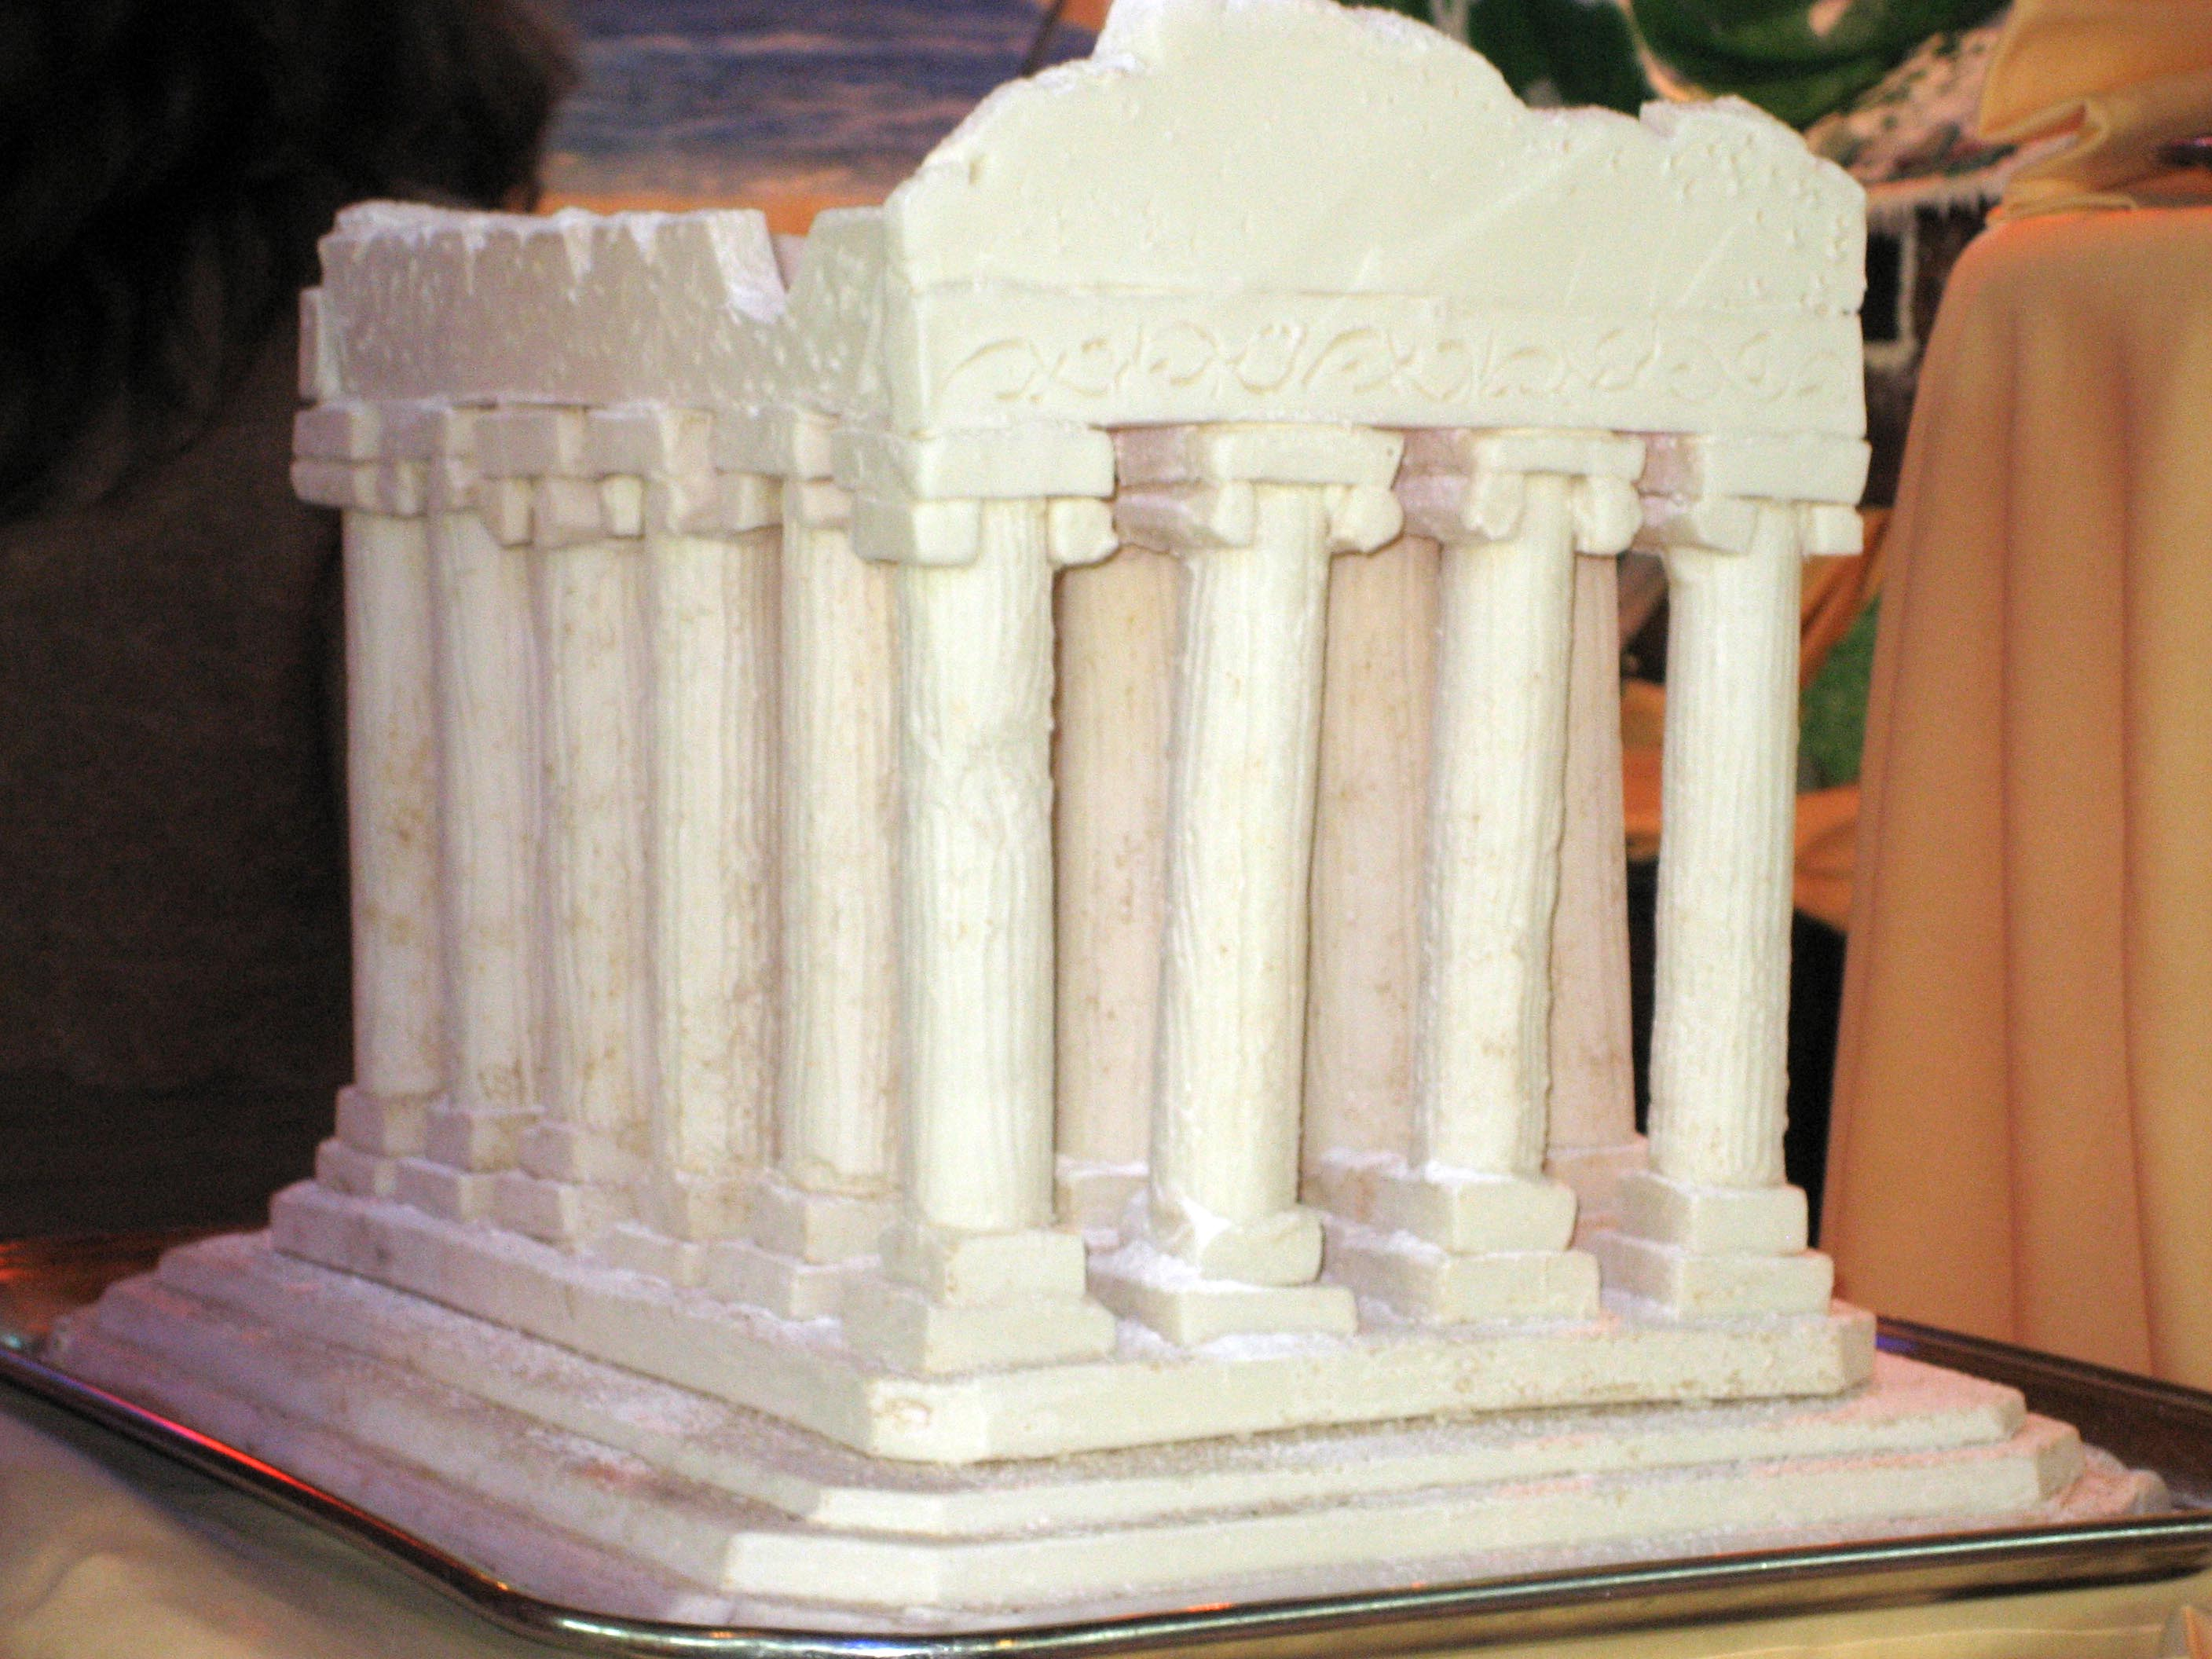 SHorizon acropolis cake 1